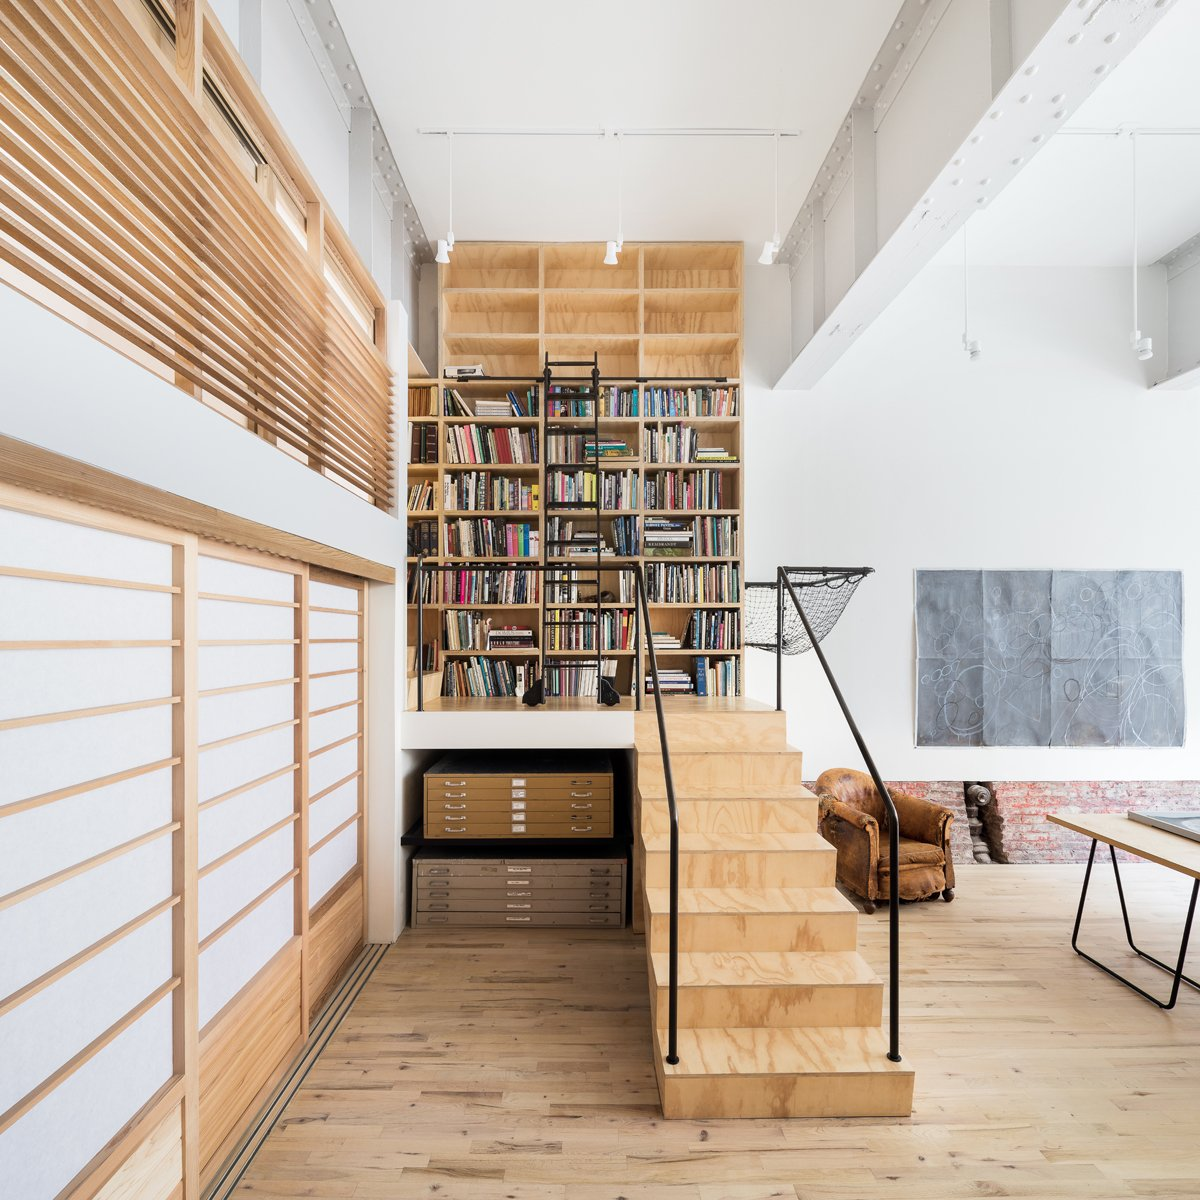 Office, Library Room Type, Craft Room Room Type, Study Room Type, Chair, Light Hardwood Floor, Bookcase, and Shelves Studio space and stair  Wells Fargo Loft by Jeff Jordan Architects